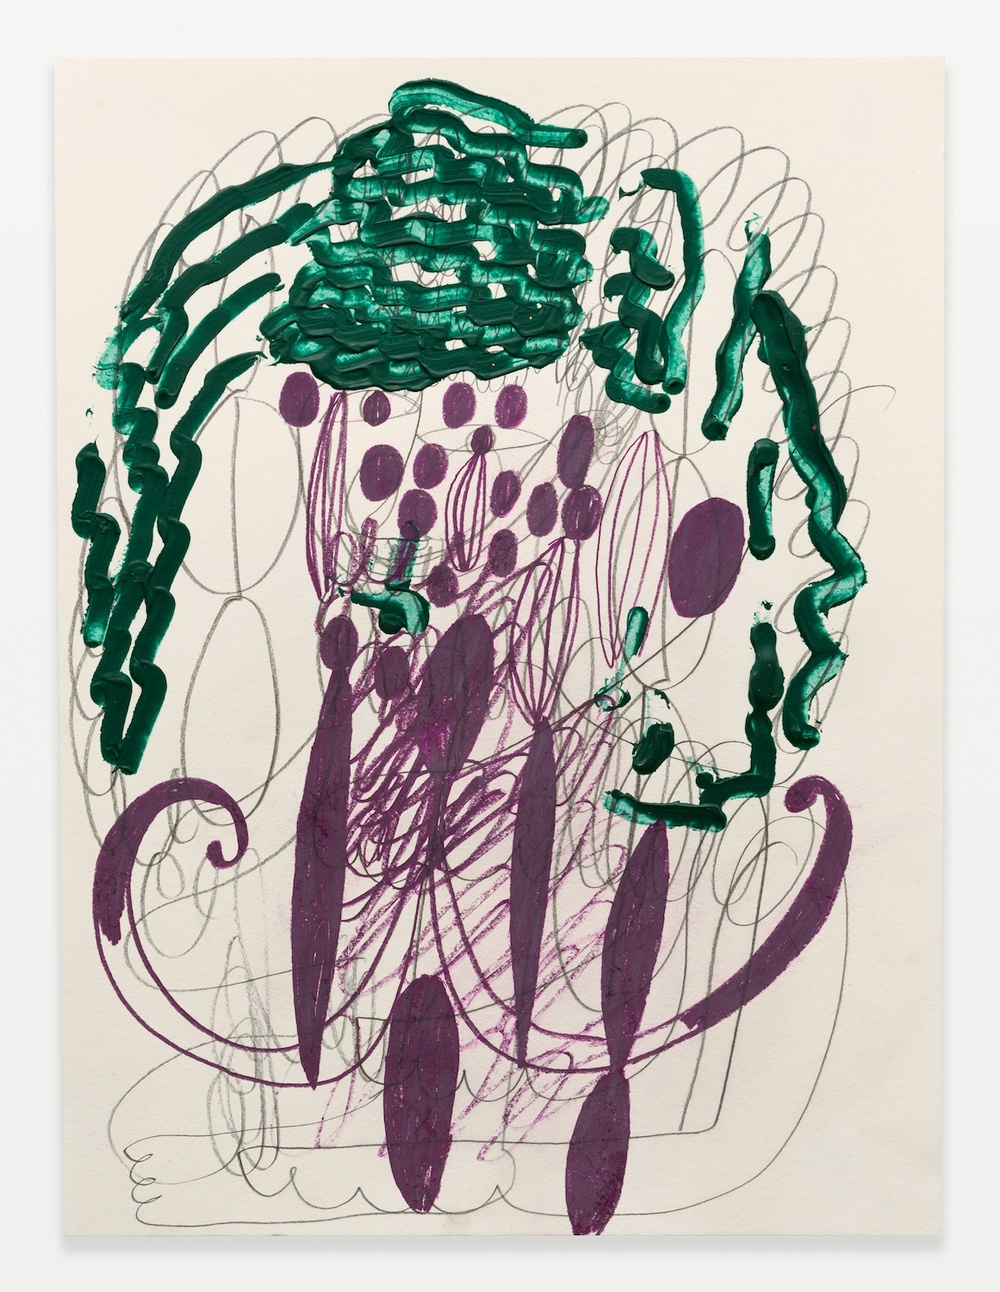 William J. O'Brien  Untitled  2014 Acrylic, colored pencil, and graphite on paper 24h x 18w in WOB964